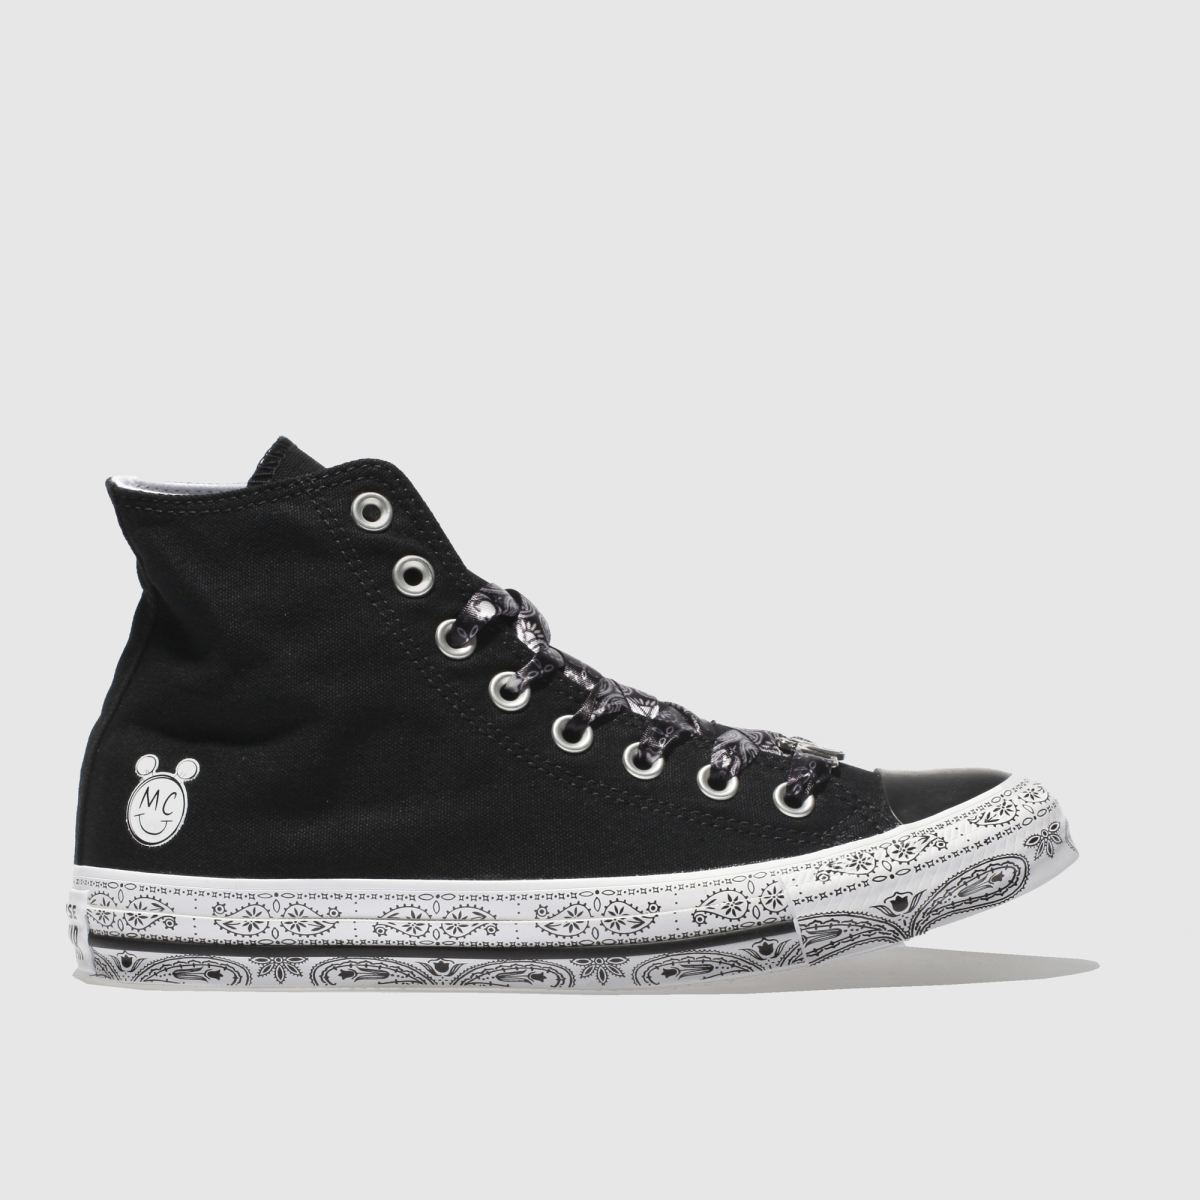 Converse Black & White All Star Miley Cyrus Hi Trainers